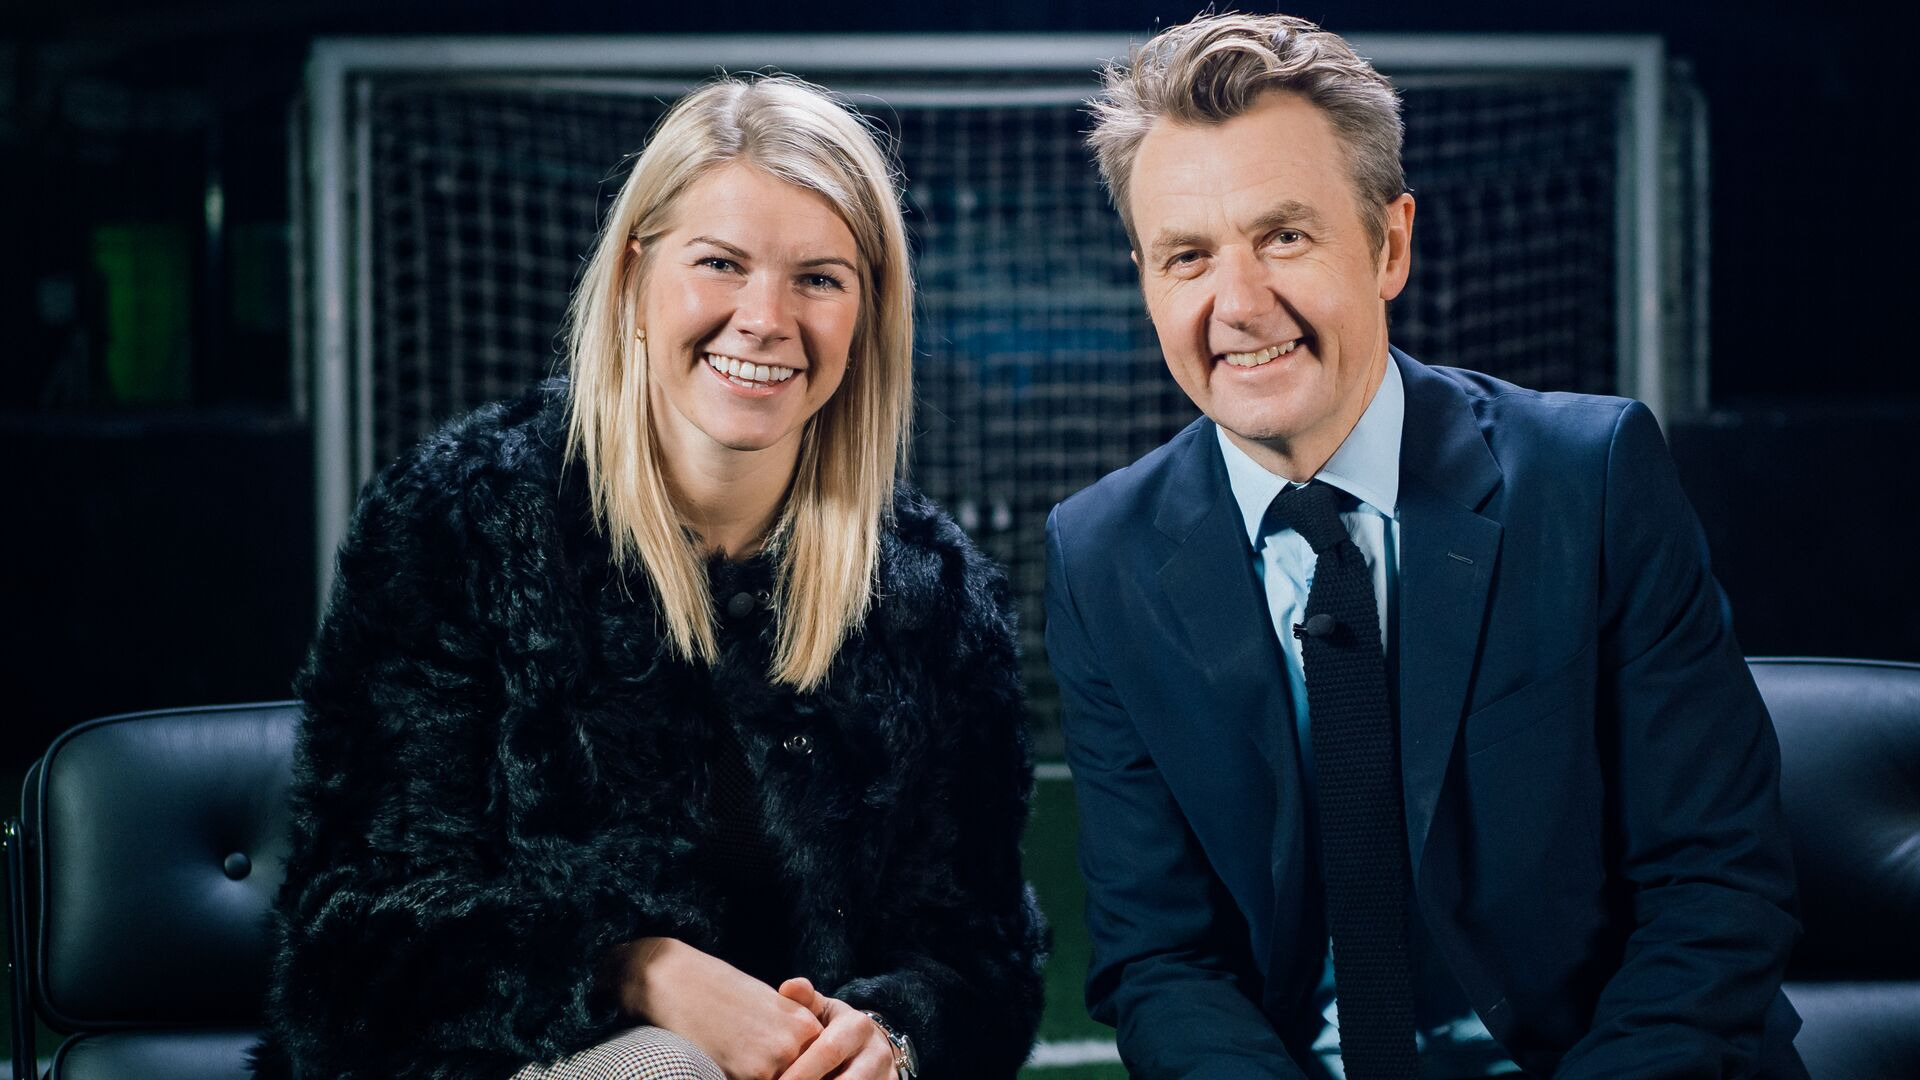 Skavlan tv show norway ada hegerberg ballon d'or winner wwc 2019 women world cup